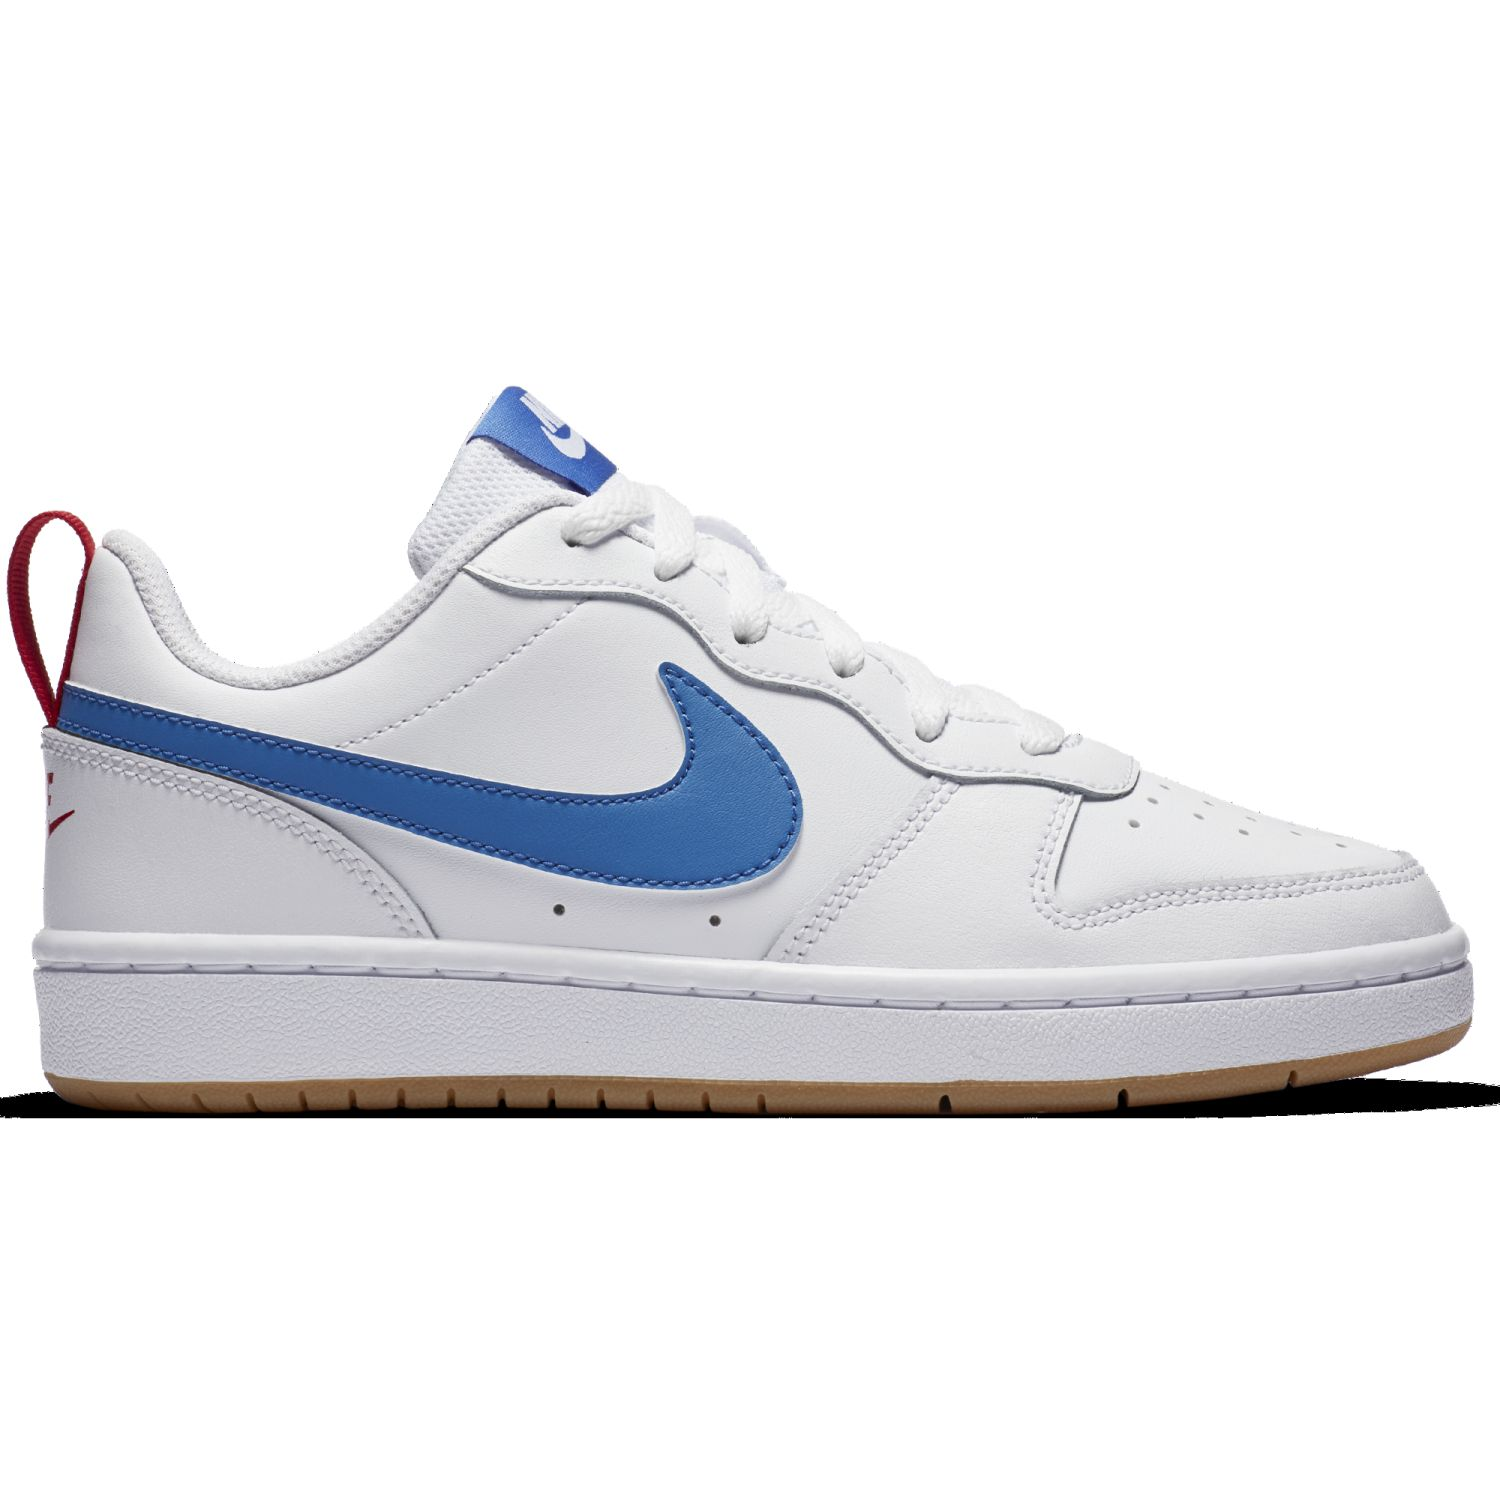 Nike Court Borough Low 2 Bg Blanco / azul Walking